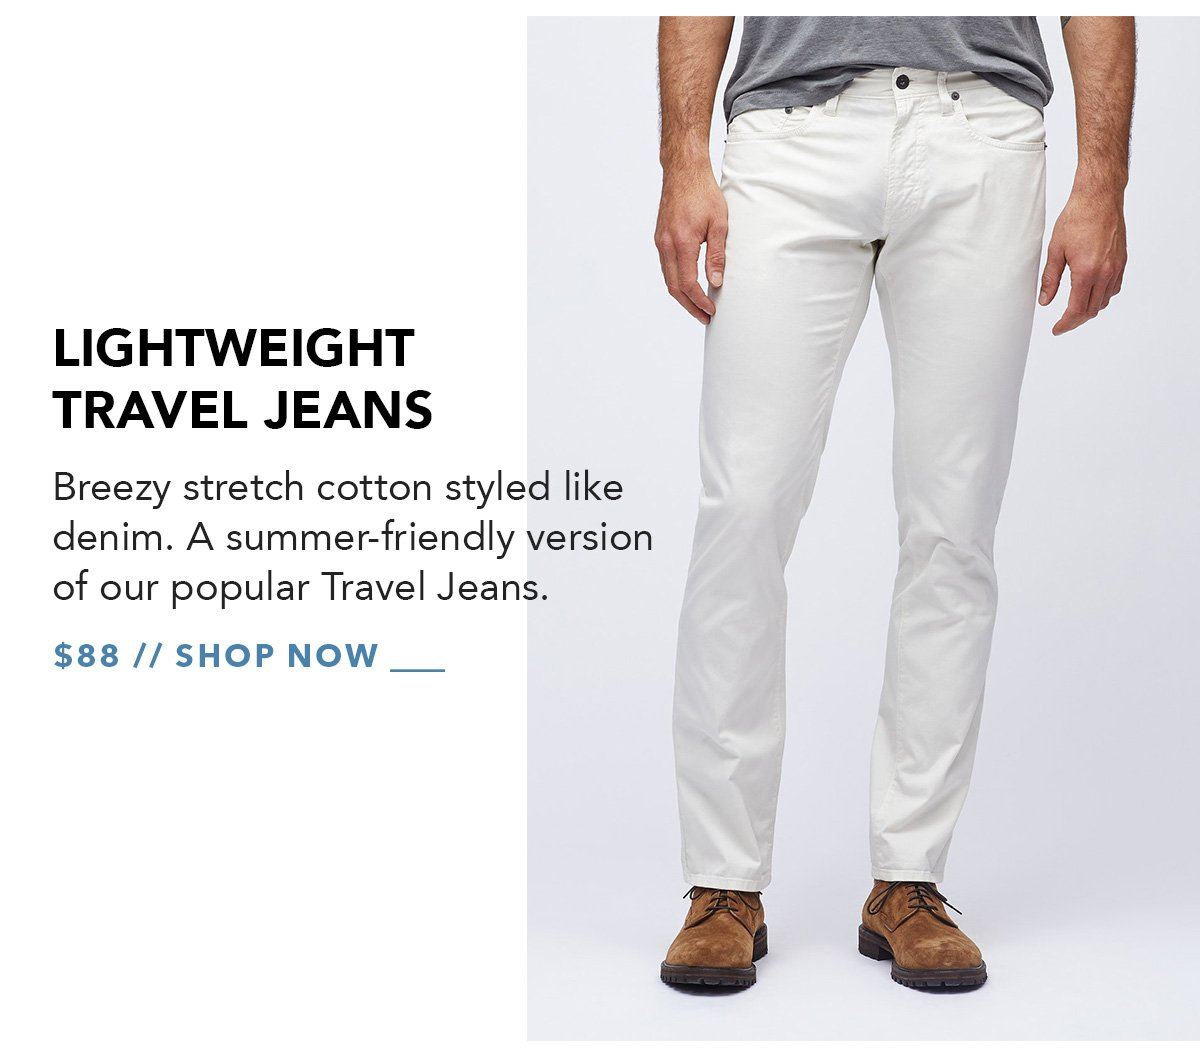 Lightweight Travel Jeans: Breezy stretch cotton styled like denim. A summer-friendly version of our popular Travel Jeans. Available in up to 3 fits and 7 colors.